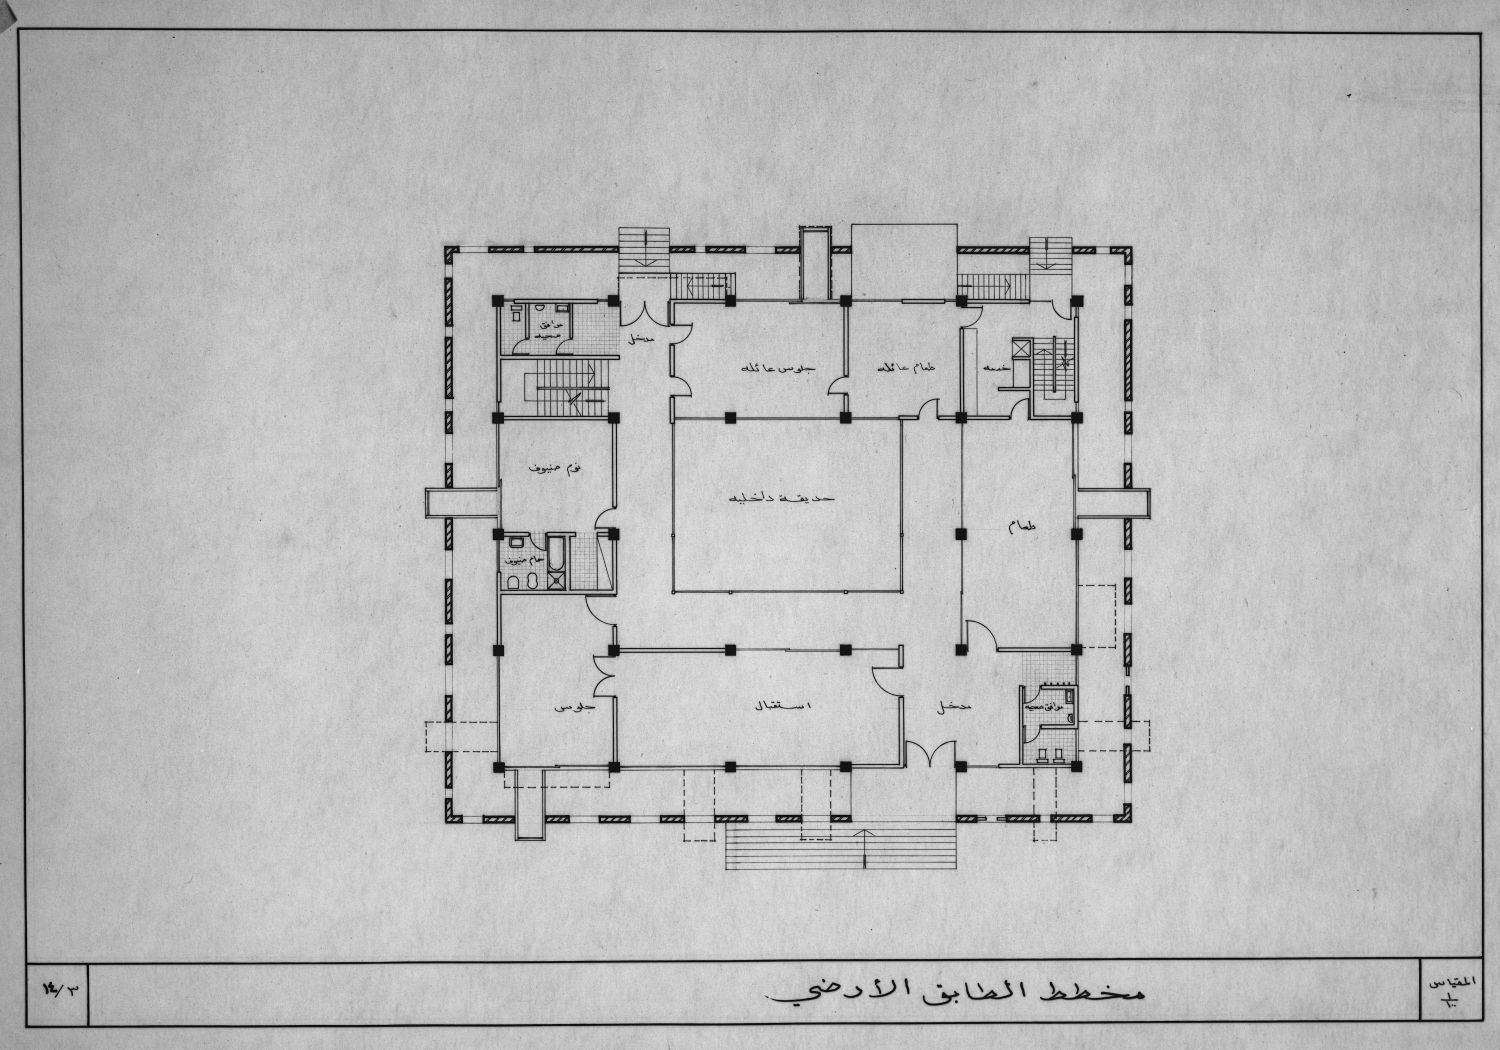 Collections Hamad House Rifat Chadirji Archive Ground Floor Plan Archnet